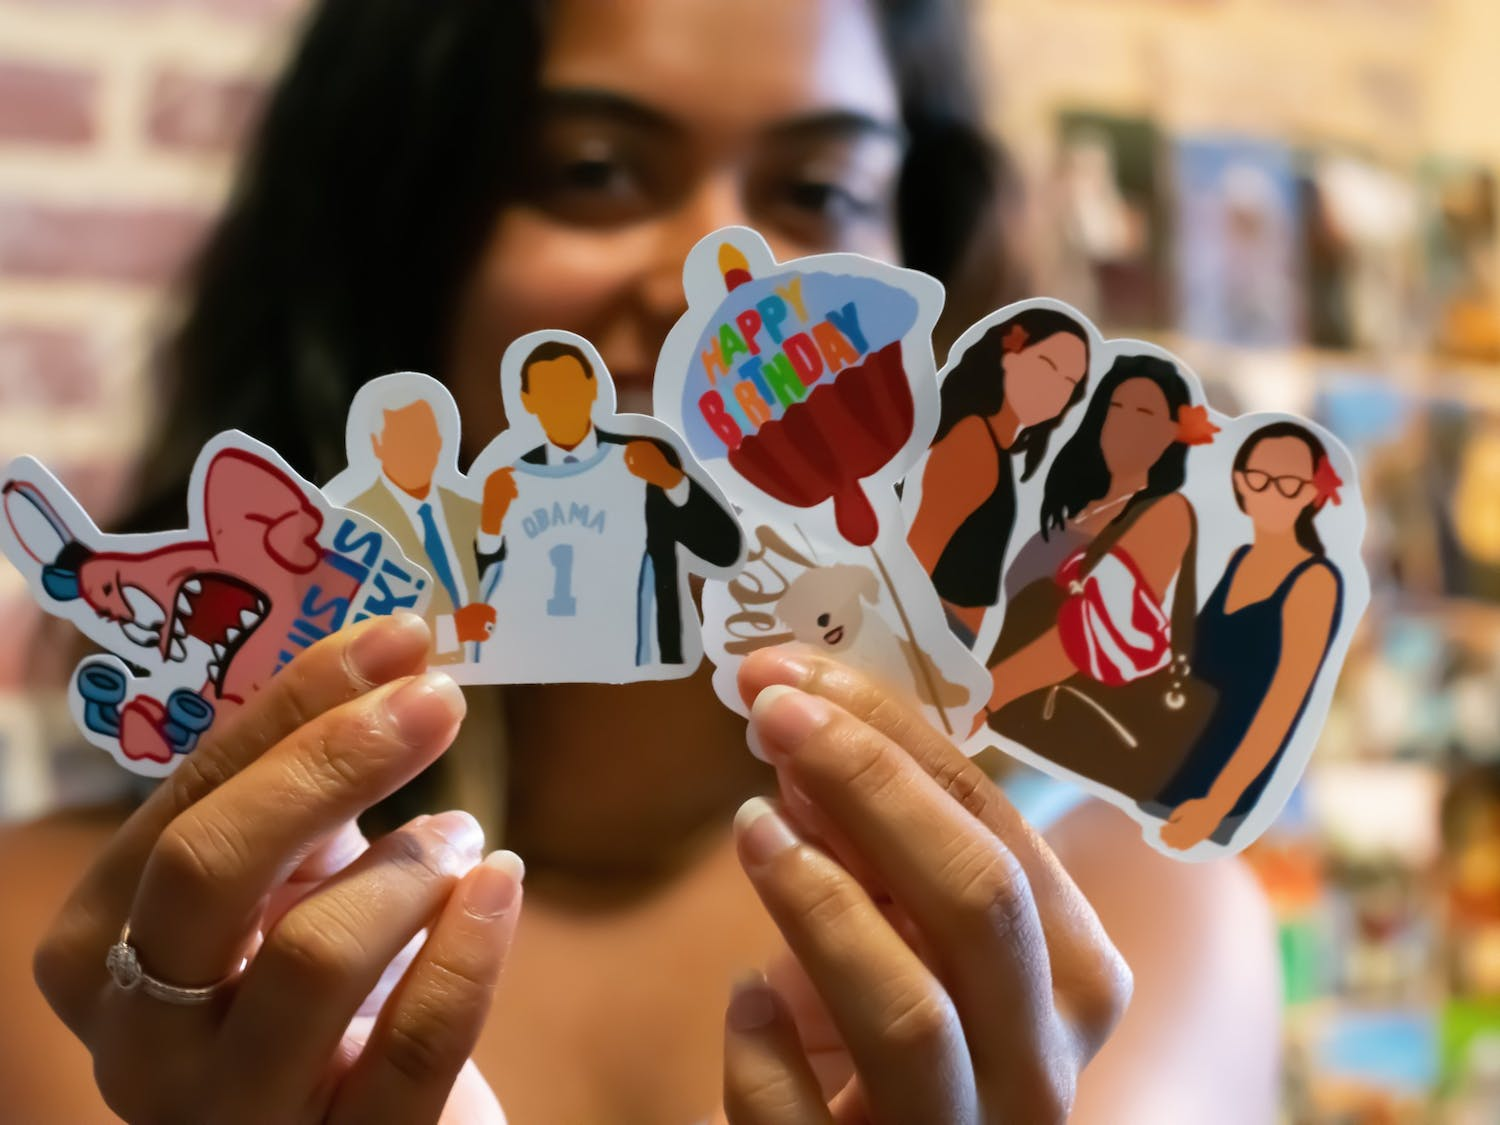 Prasiddhi Jain, Computer Science and Biostatistics senior and founder of The Printaholic, shows off the custom stickers she makes from her Chapel Hill apartment. Students around Chapel Hill are showing off their creativity by starting small businesses selling prints and stickers.